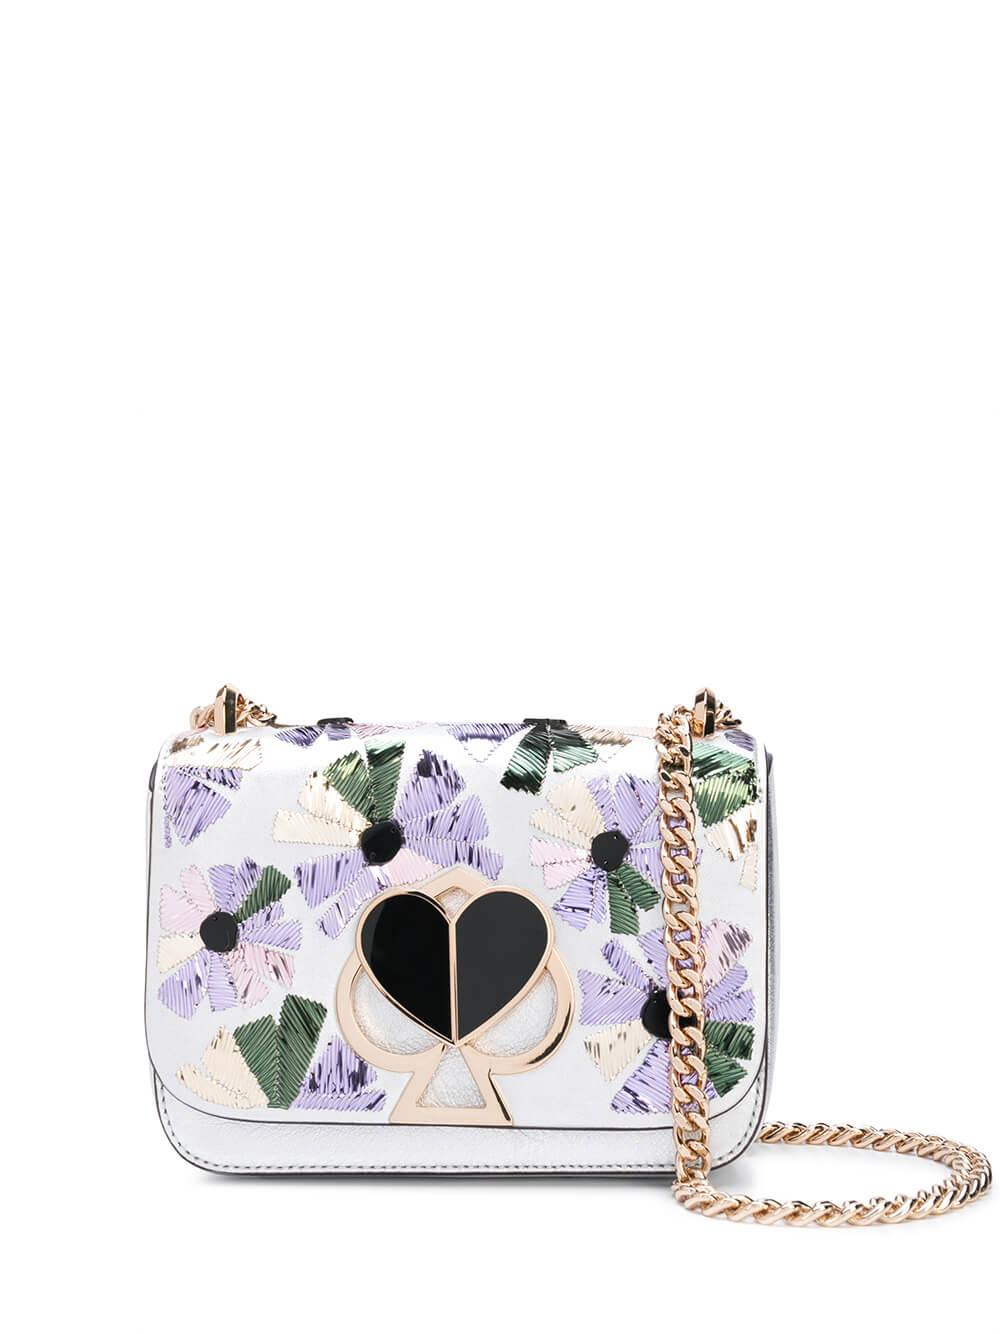 Nicola Wallflower Cross Body Item # PXRUA882